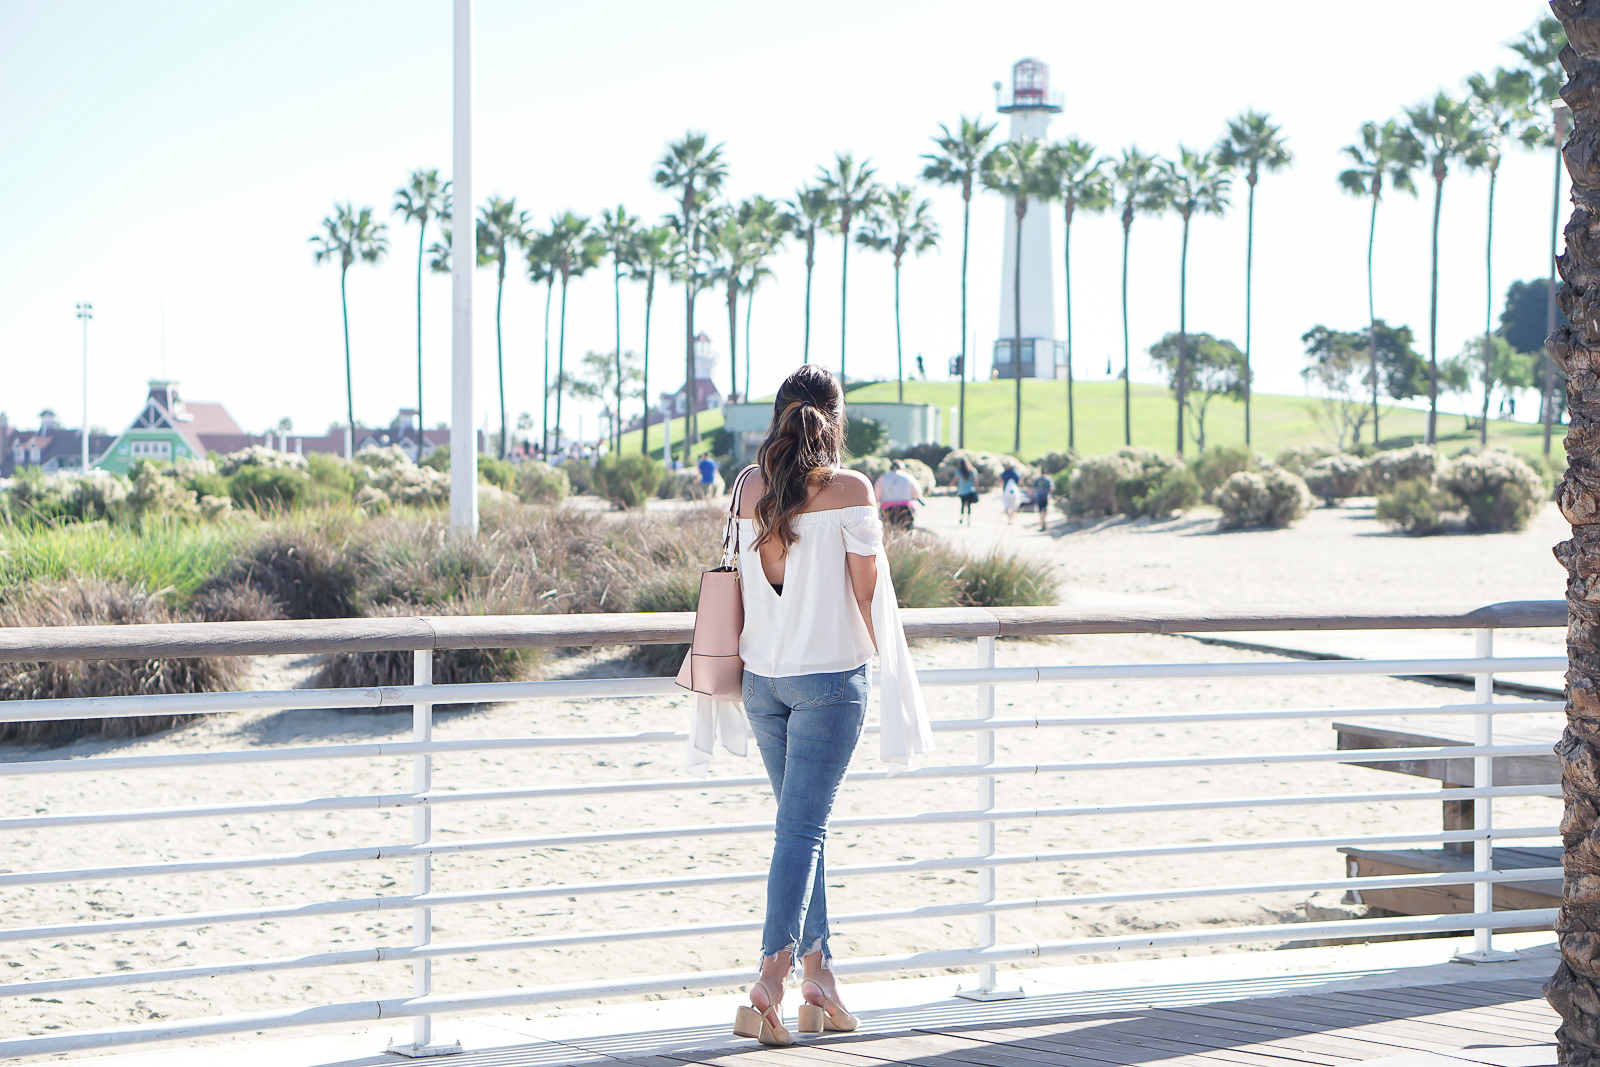 L.A. Finds, Long Beach Shoreline Aquatic Park, True Honest Fashion, Nasty Gal White Off the Shoulder Top, H&M High Waisted Jeans, Zara Beige Block Heel, Chanel Inspired Slingback heels, Calvin Klein Blush Pink Bag, Quay x Desi Perkins High Key Gold Sunglasses,